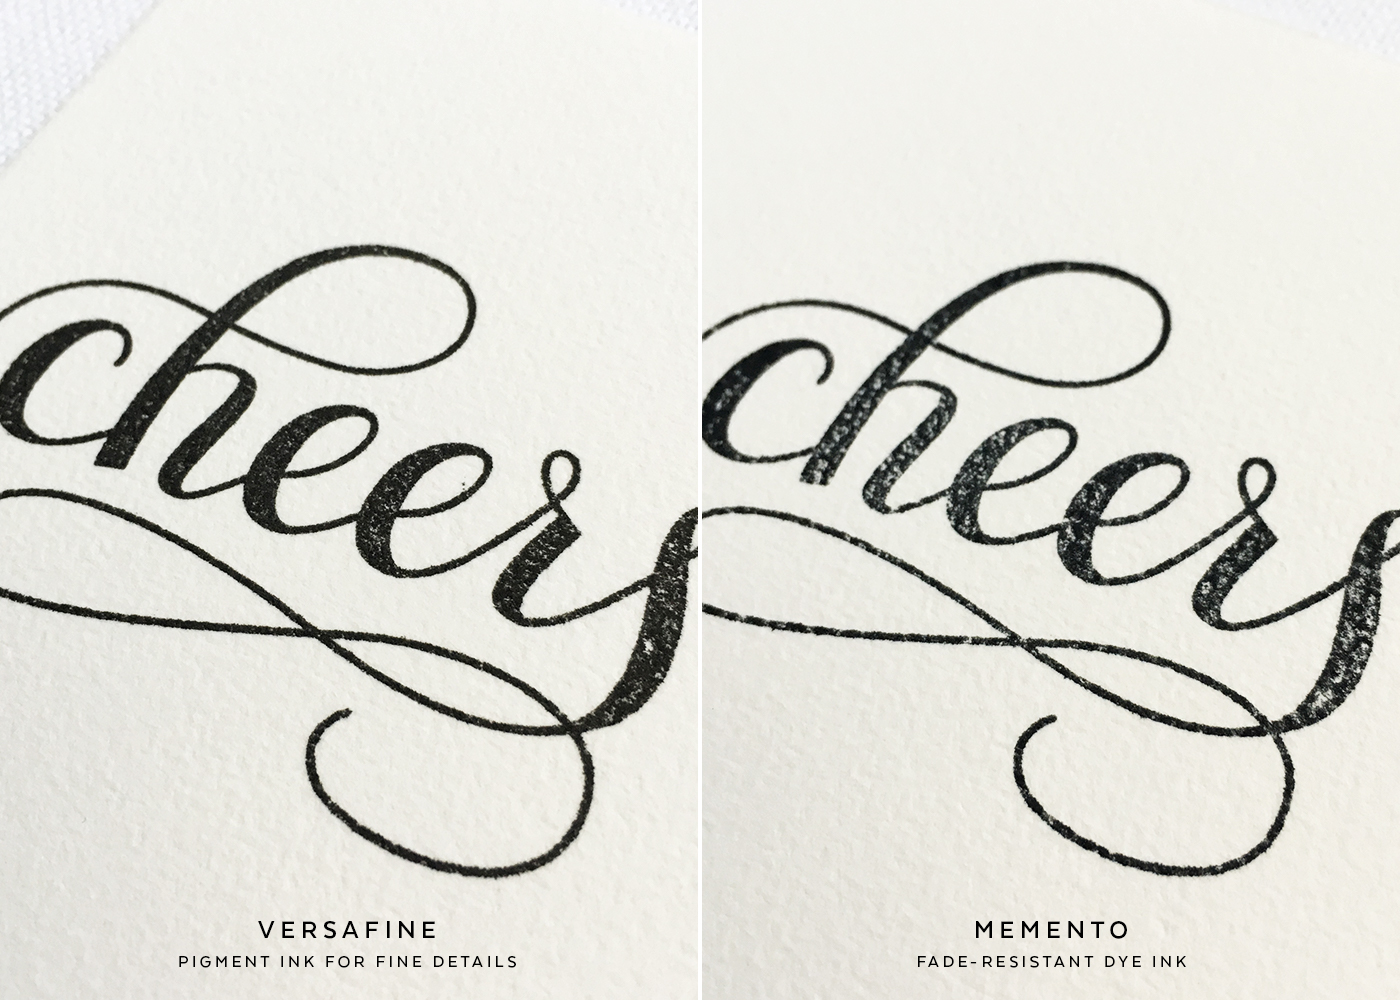 Black Stamp Pad Comparison | Watercolor Paper (Detail)